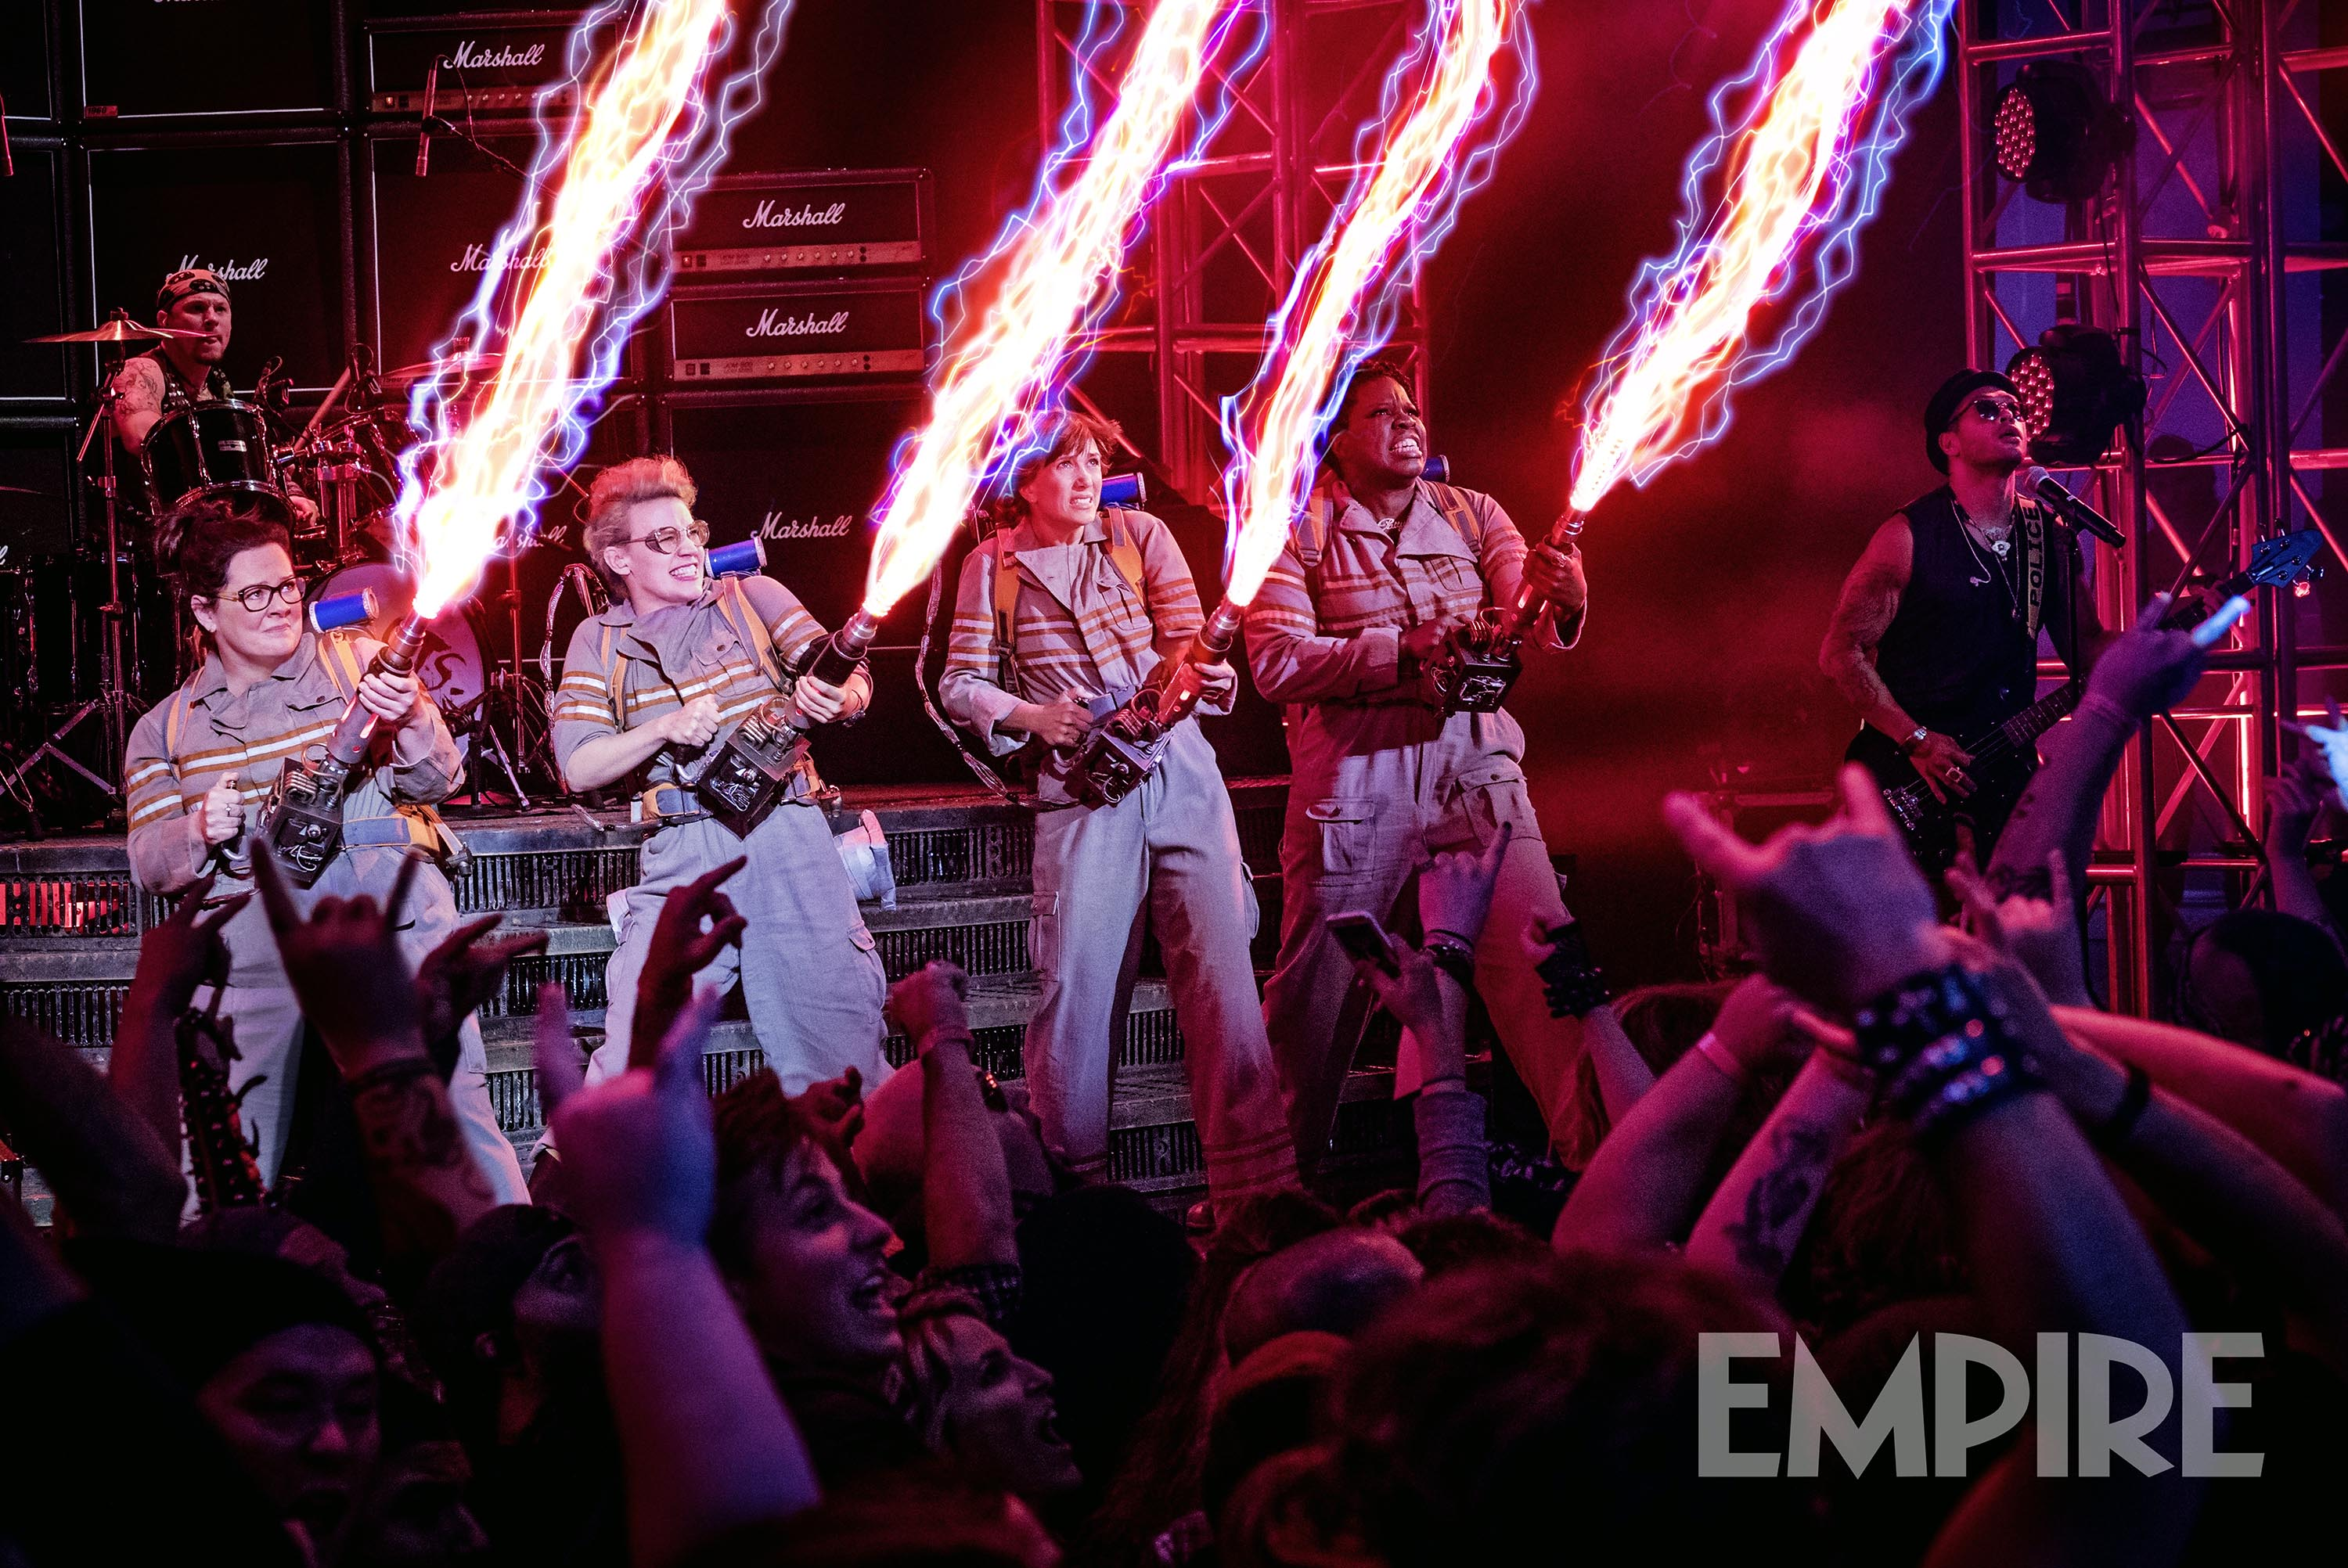 The new Ghostbusters still